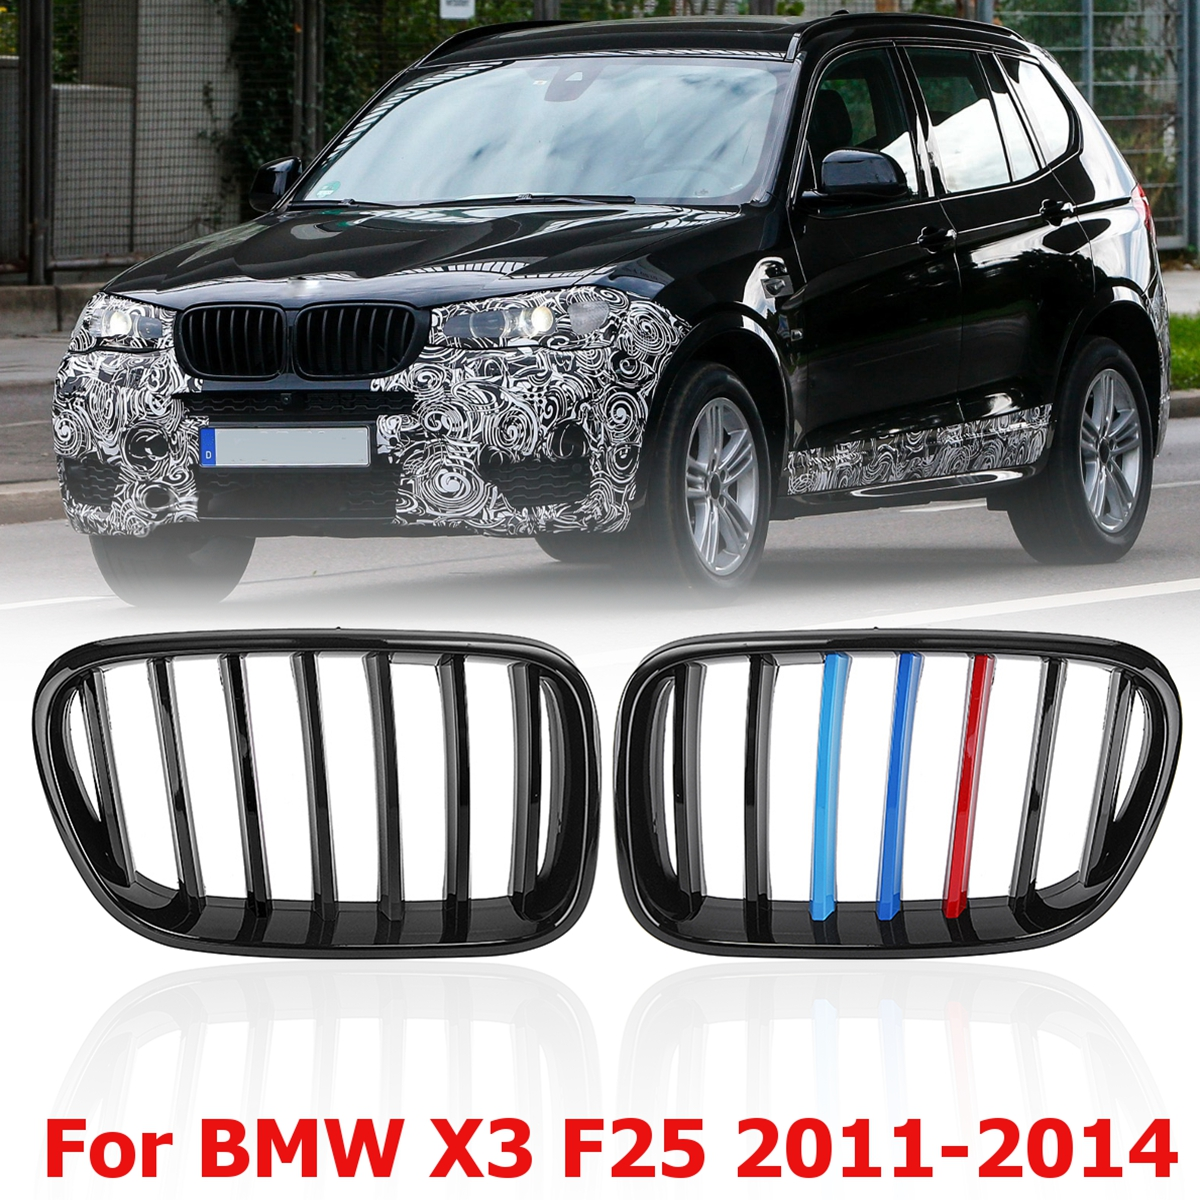 1 Pair Gloss Black M-Color Front Bumper Center Kidney Grilles For BMW X3 F25 2011 2012 2013 2014 Racing Grills possbay chrome front hood kidney grilles for bmw x5 e53 3 0d 3 0i 4 4i 4 8is 2003 2007 facelift front bumper center grills